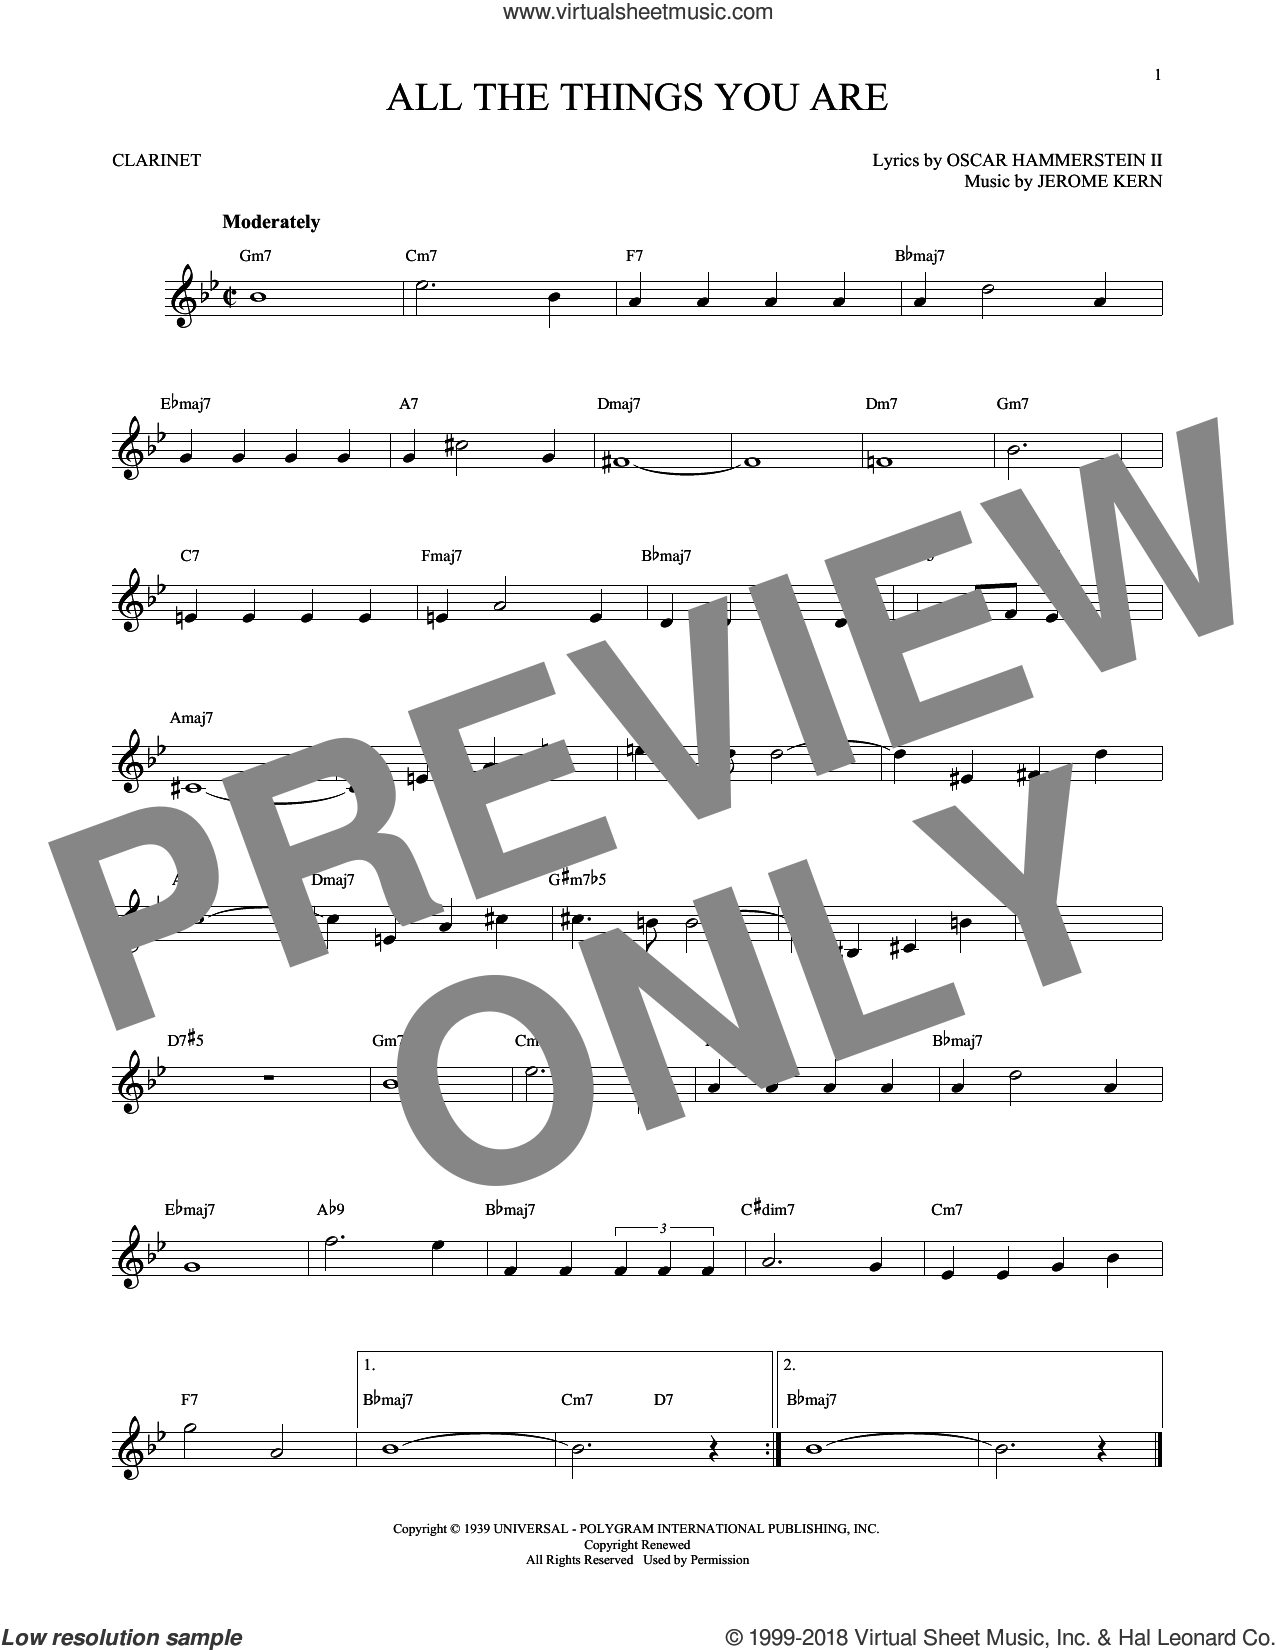 All The Things You Are sheet music for clarinet solo by Oscar II Hammerstein, Jack Leonard with Tommy Dorsey Orchestra and Jerome Kern, intermediate. Score Image Preview.